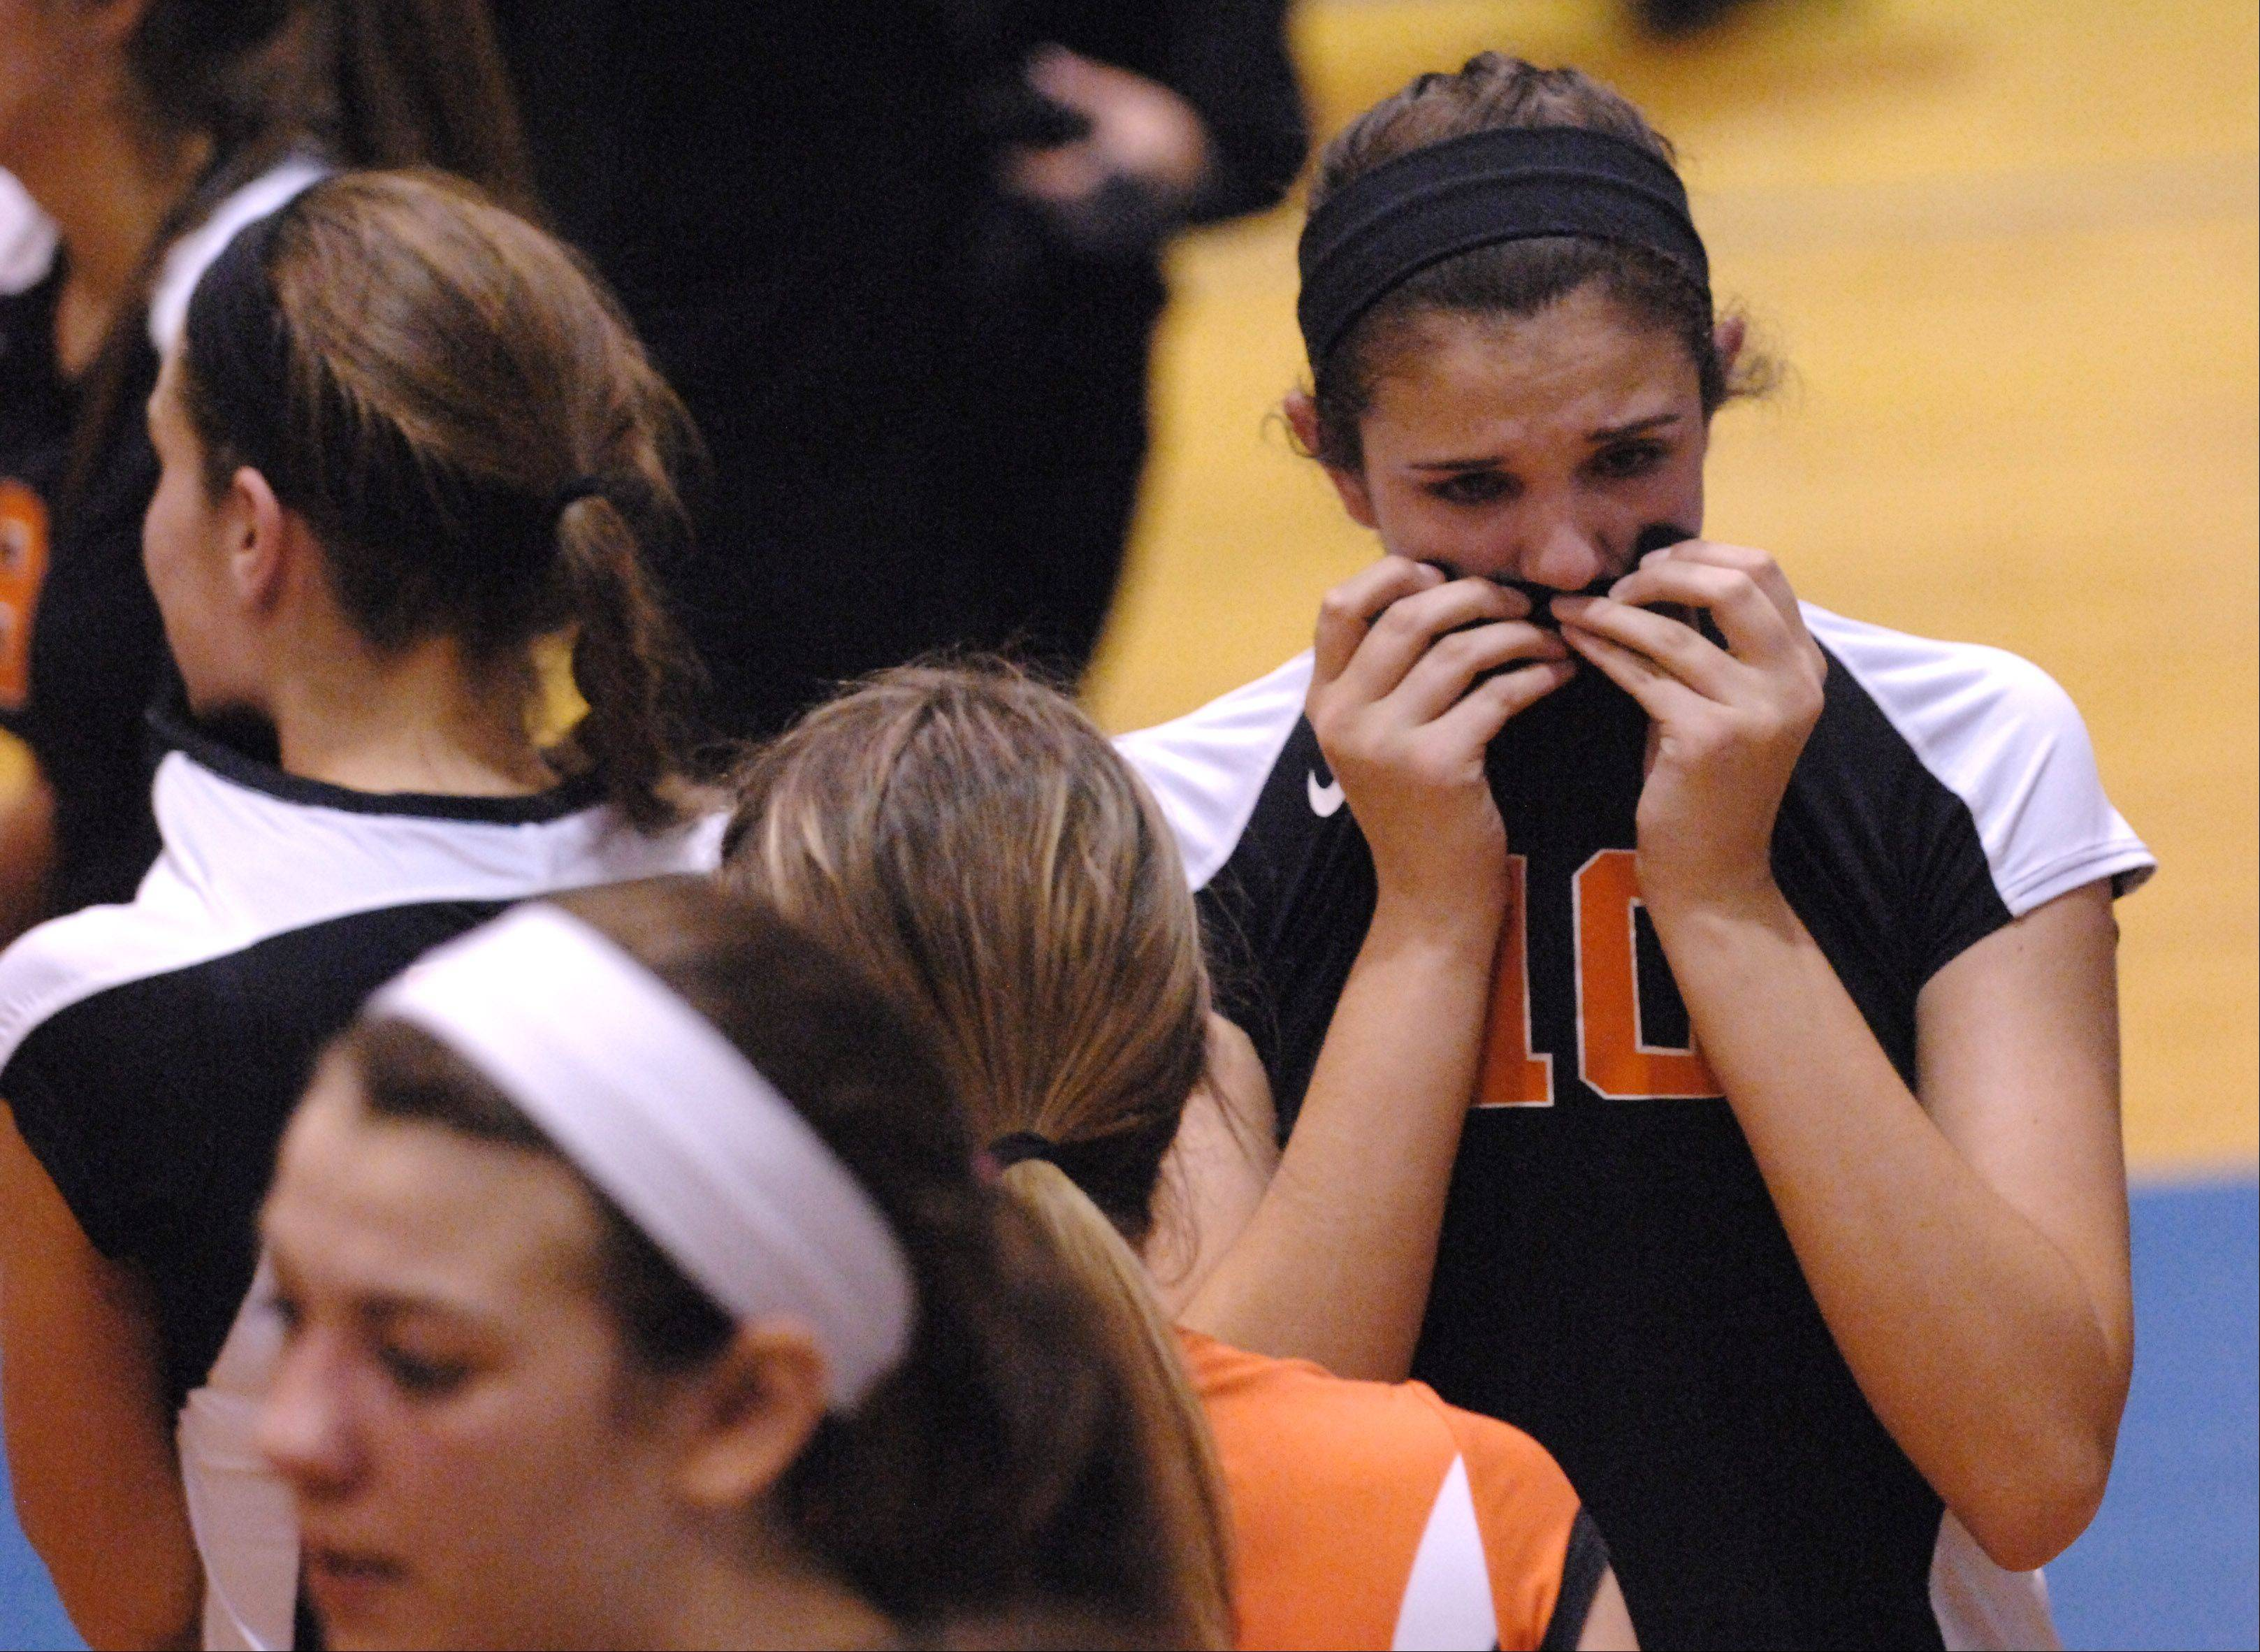 St. Charles East's Mikaela Mosquera gets emotional following the Saints loss to Geneva during Tuesday's sectional semifinals at Larkin High School in Elgin.